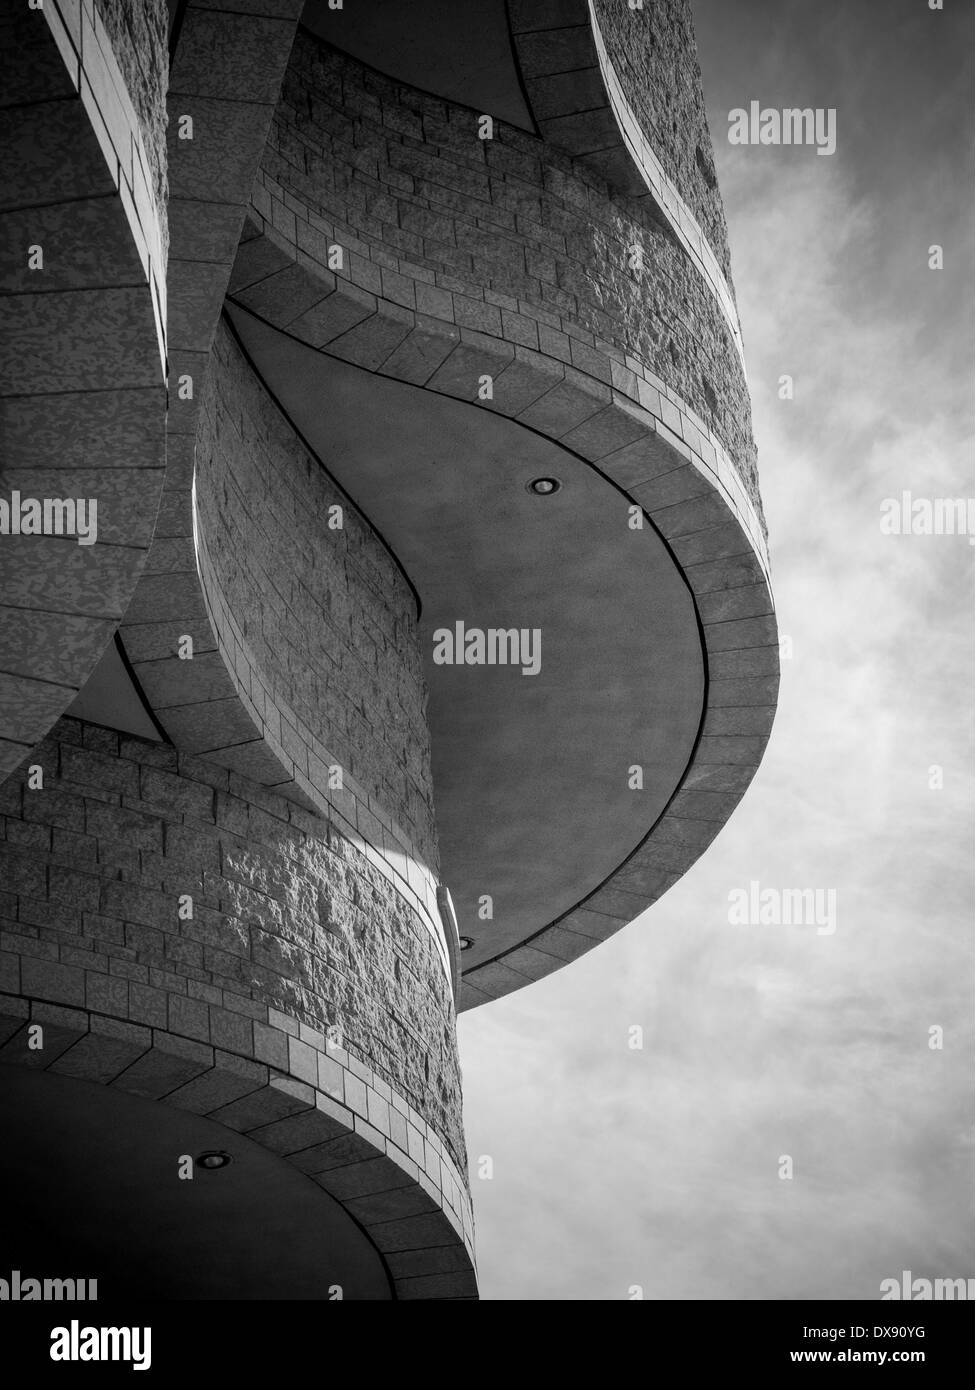 Intersecting curves at the Museum of Civilization. Complex curves make the architecture of this landmark capital region museum - Stock Image